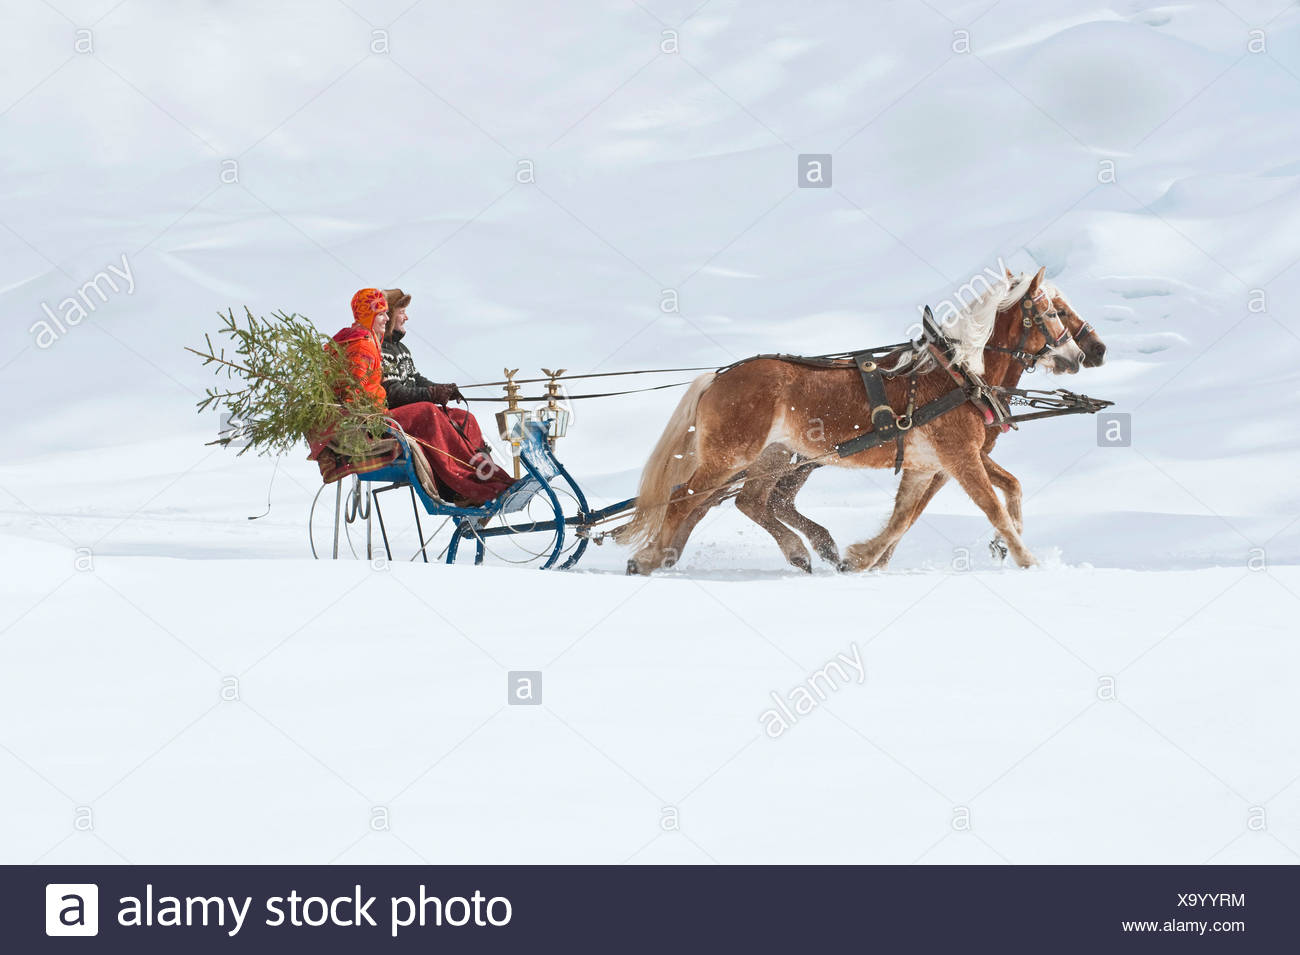 Austria, Salzburger Land, Couple  transporting Christmas tree on sleigh, smiling, side view - Stock Image